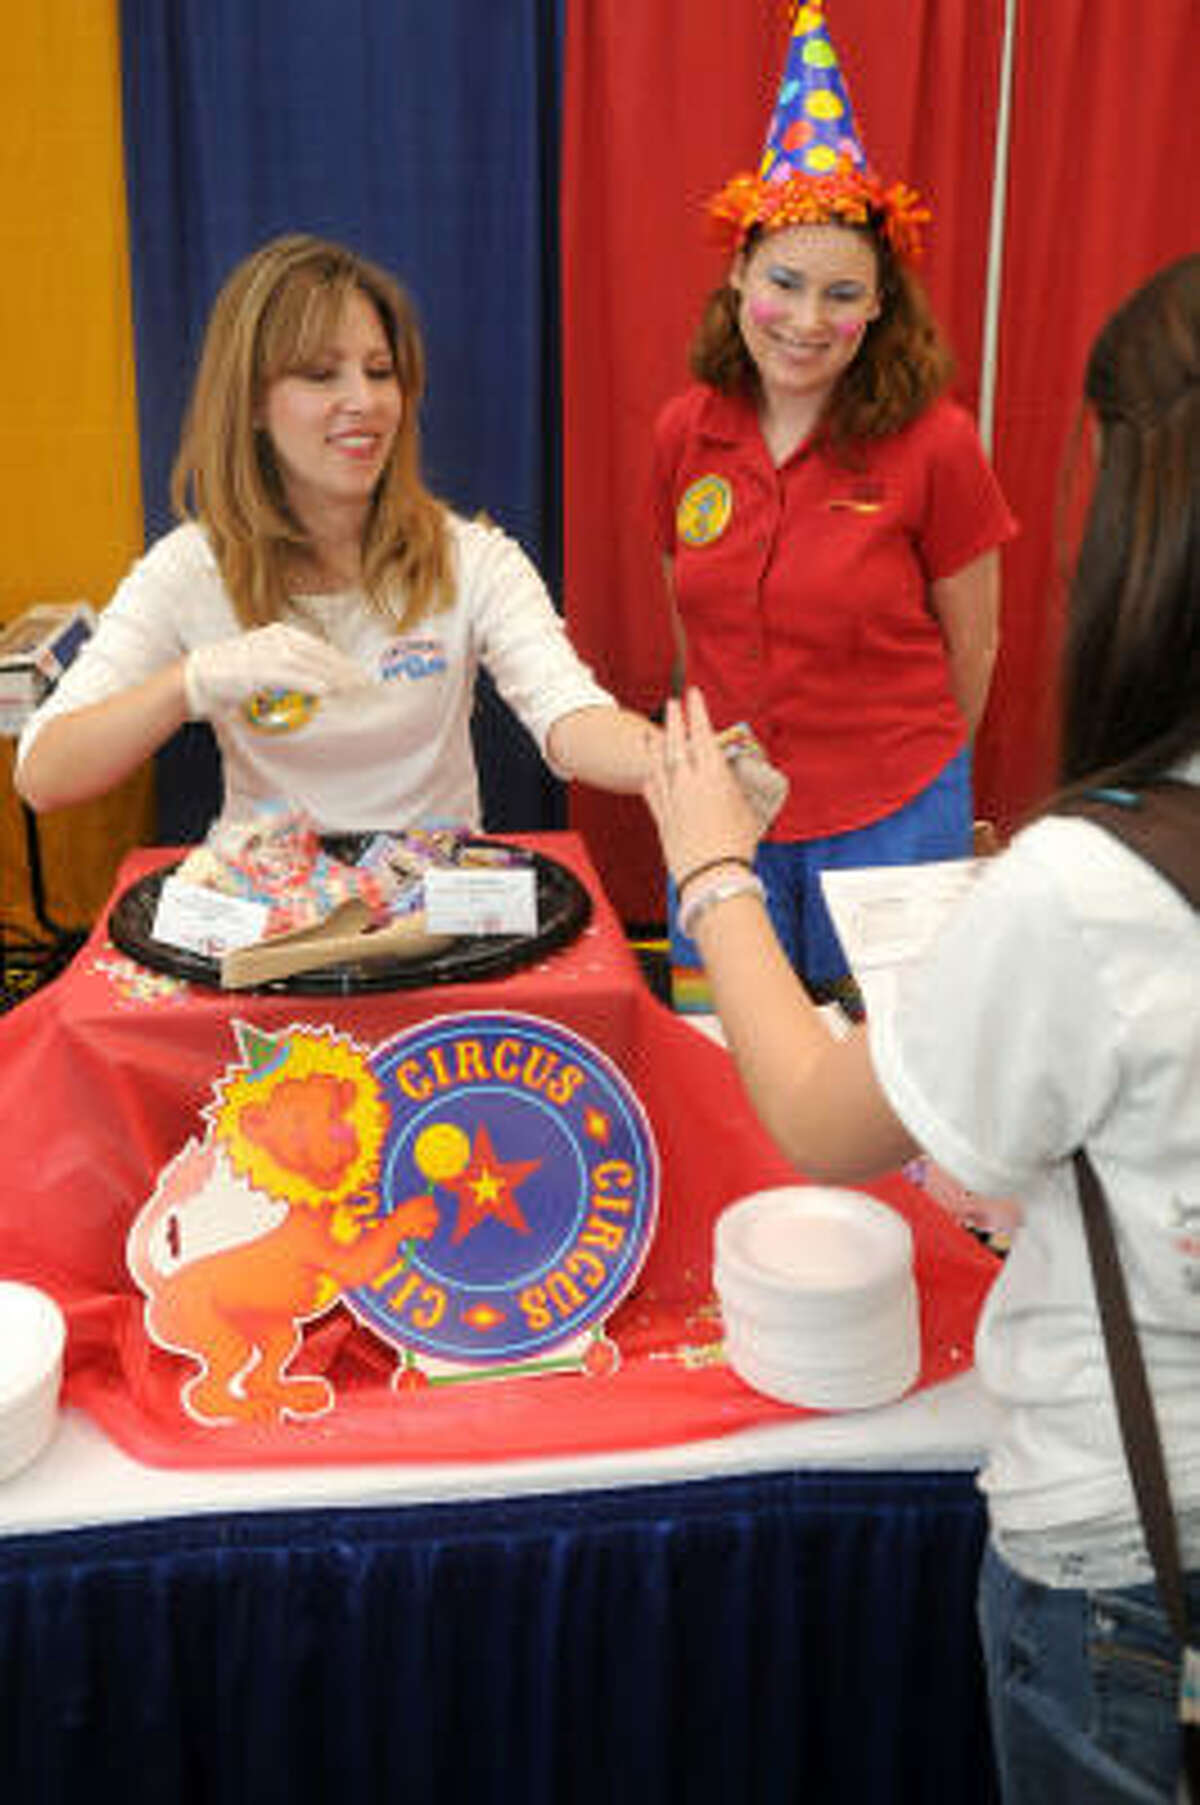 Food Co-op Expo: Valerie Karchmer, left, of Dallas, at her J.M. Smuckers booth, with clown Anna Rosa of Houston, shares a sample with Kristin Smith, 14, a freshman at Atascocita High School.